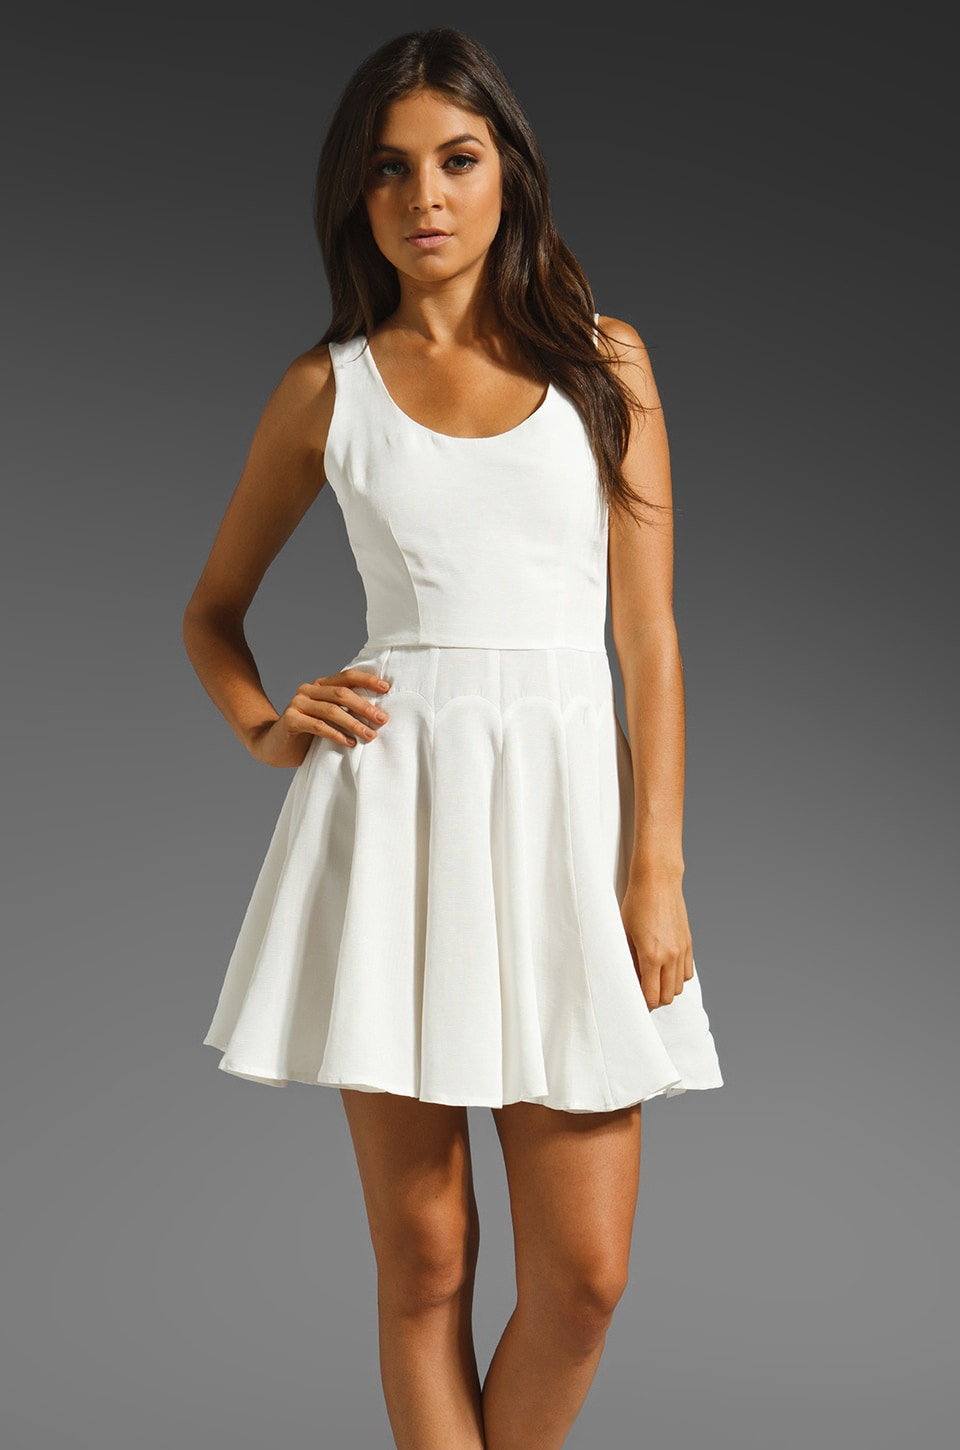 keepsake Constellation Dress in White